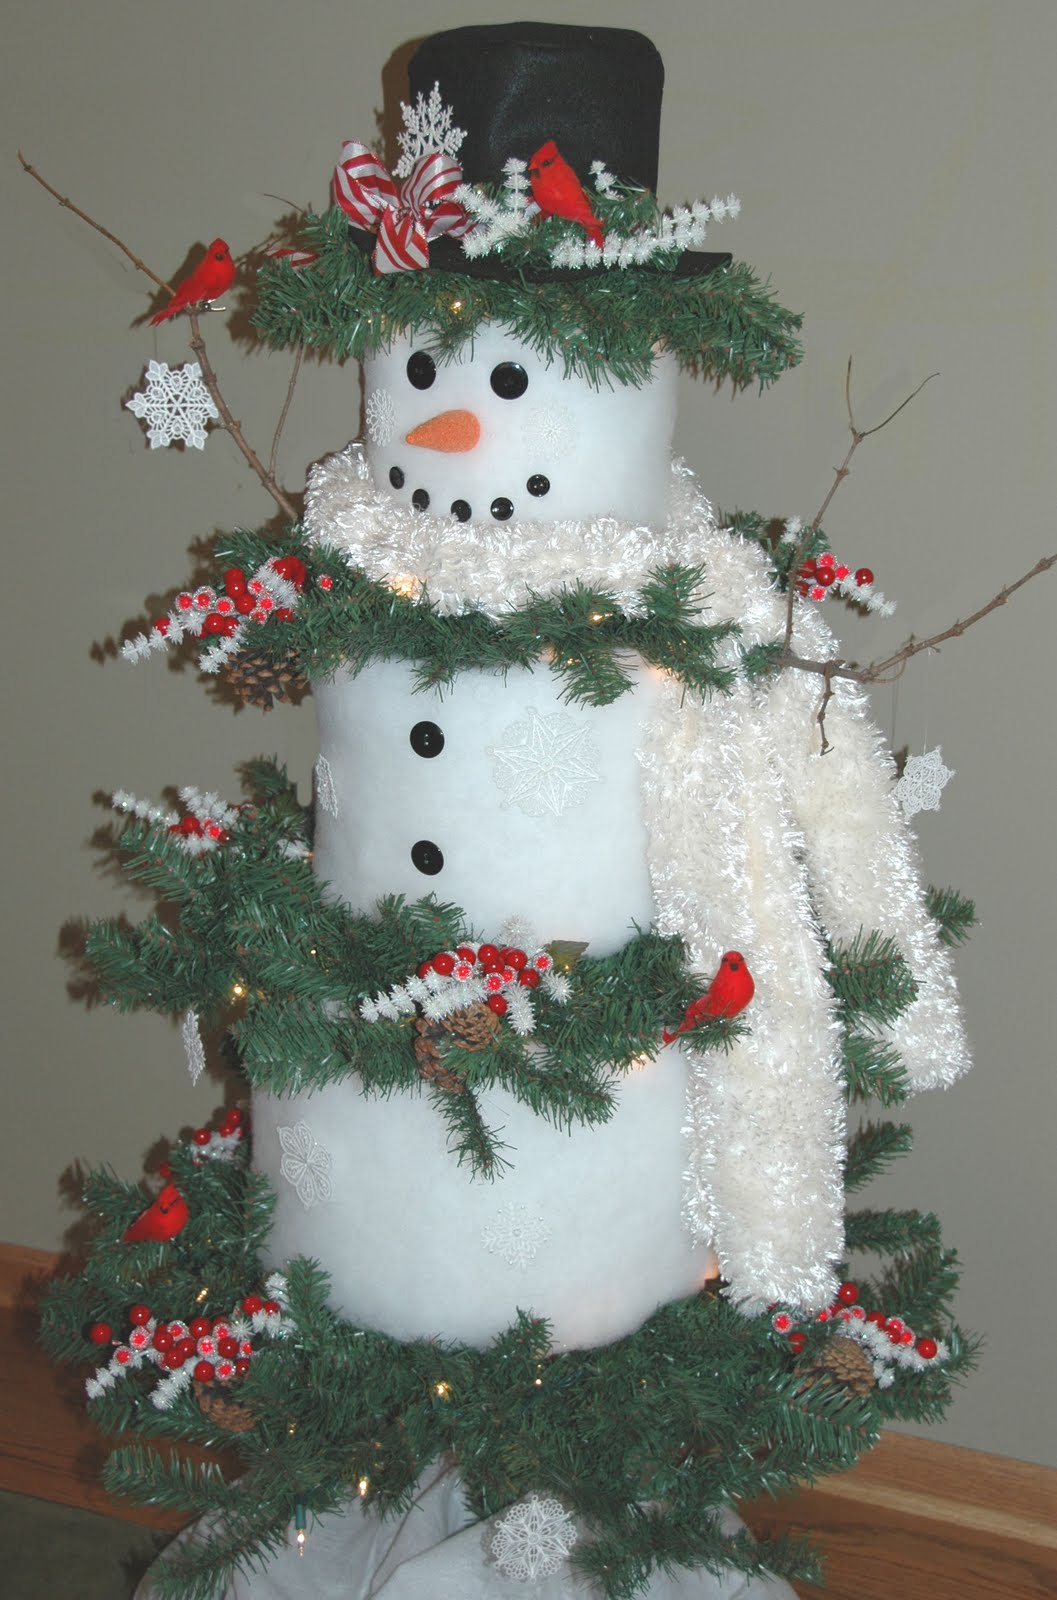 ... Snowman tree use a christmas tree as a base to make this fun snowman